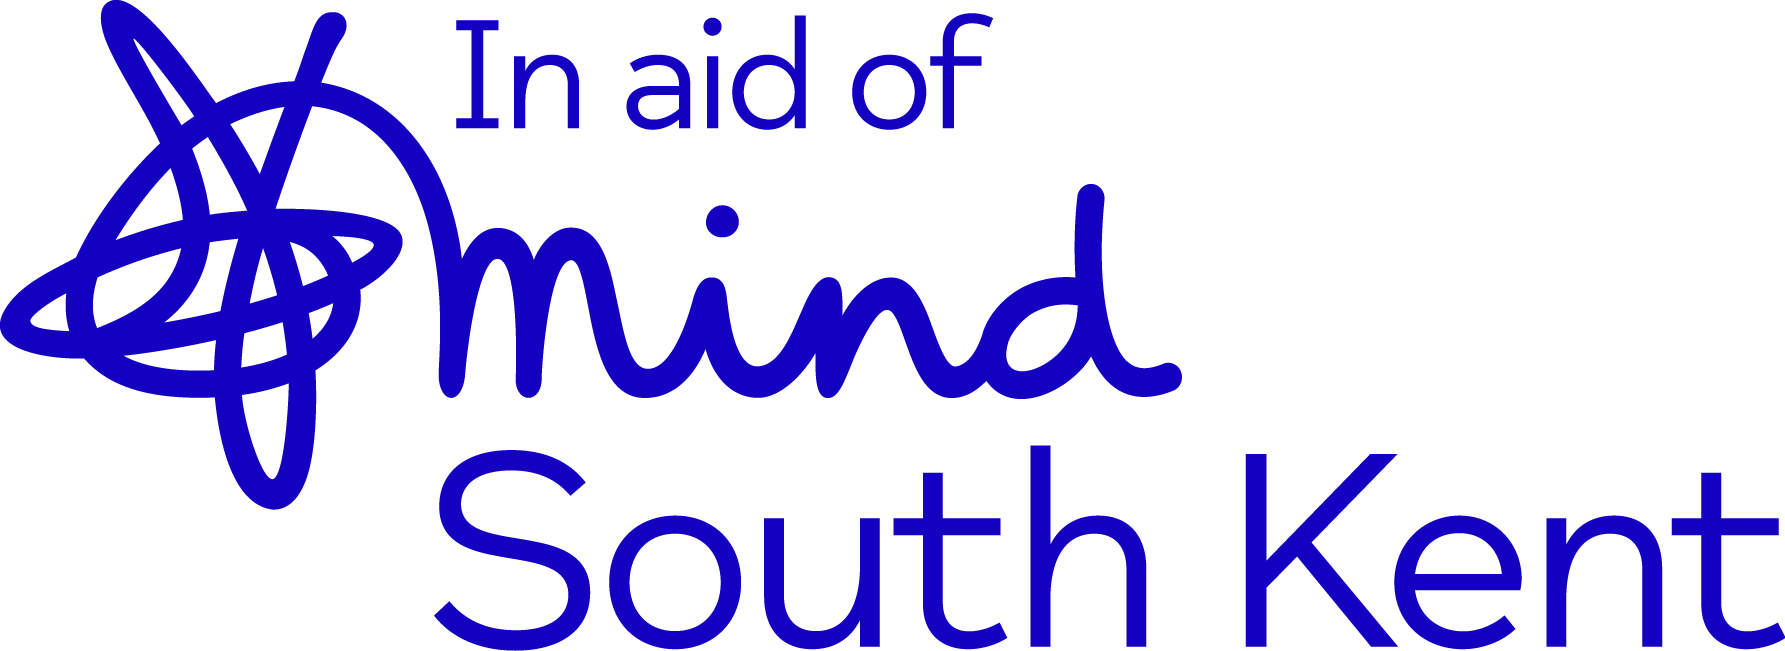 South_Kent_Mind_In_Aid_of_Logo_stacked_RGB